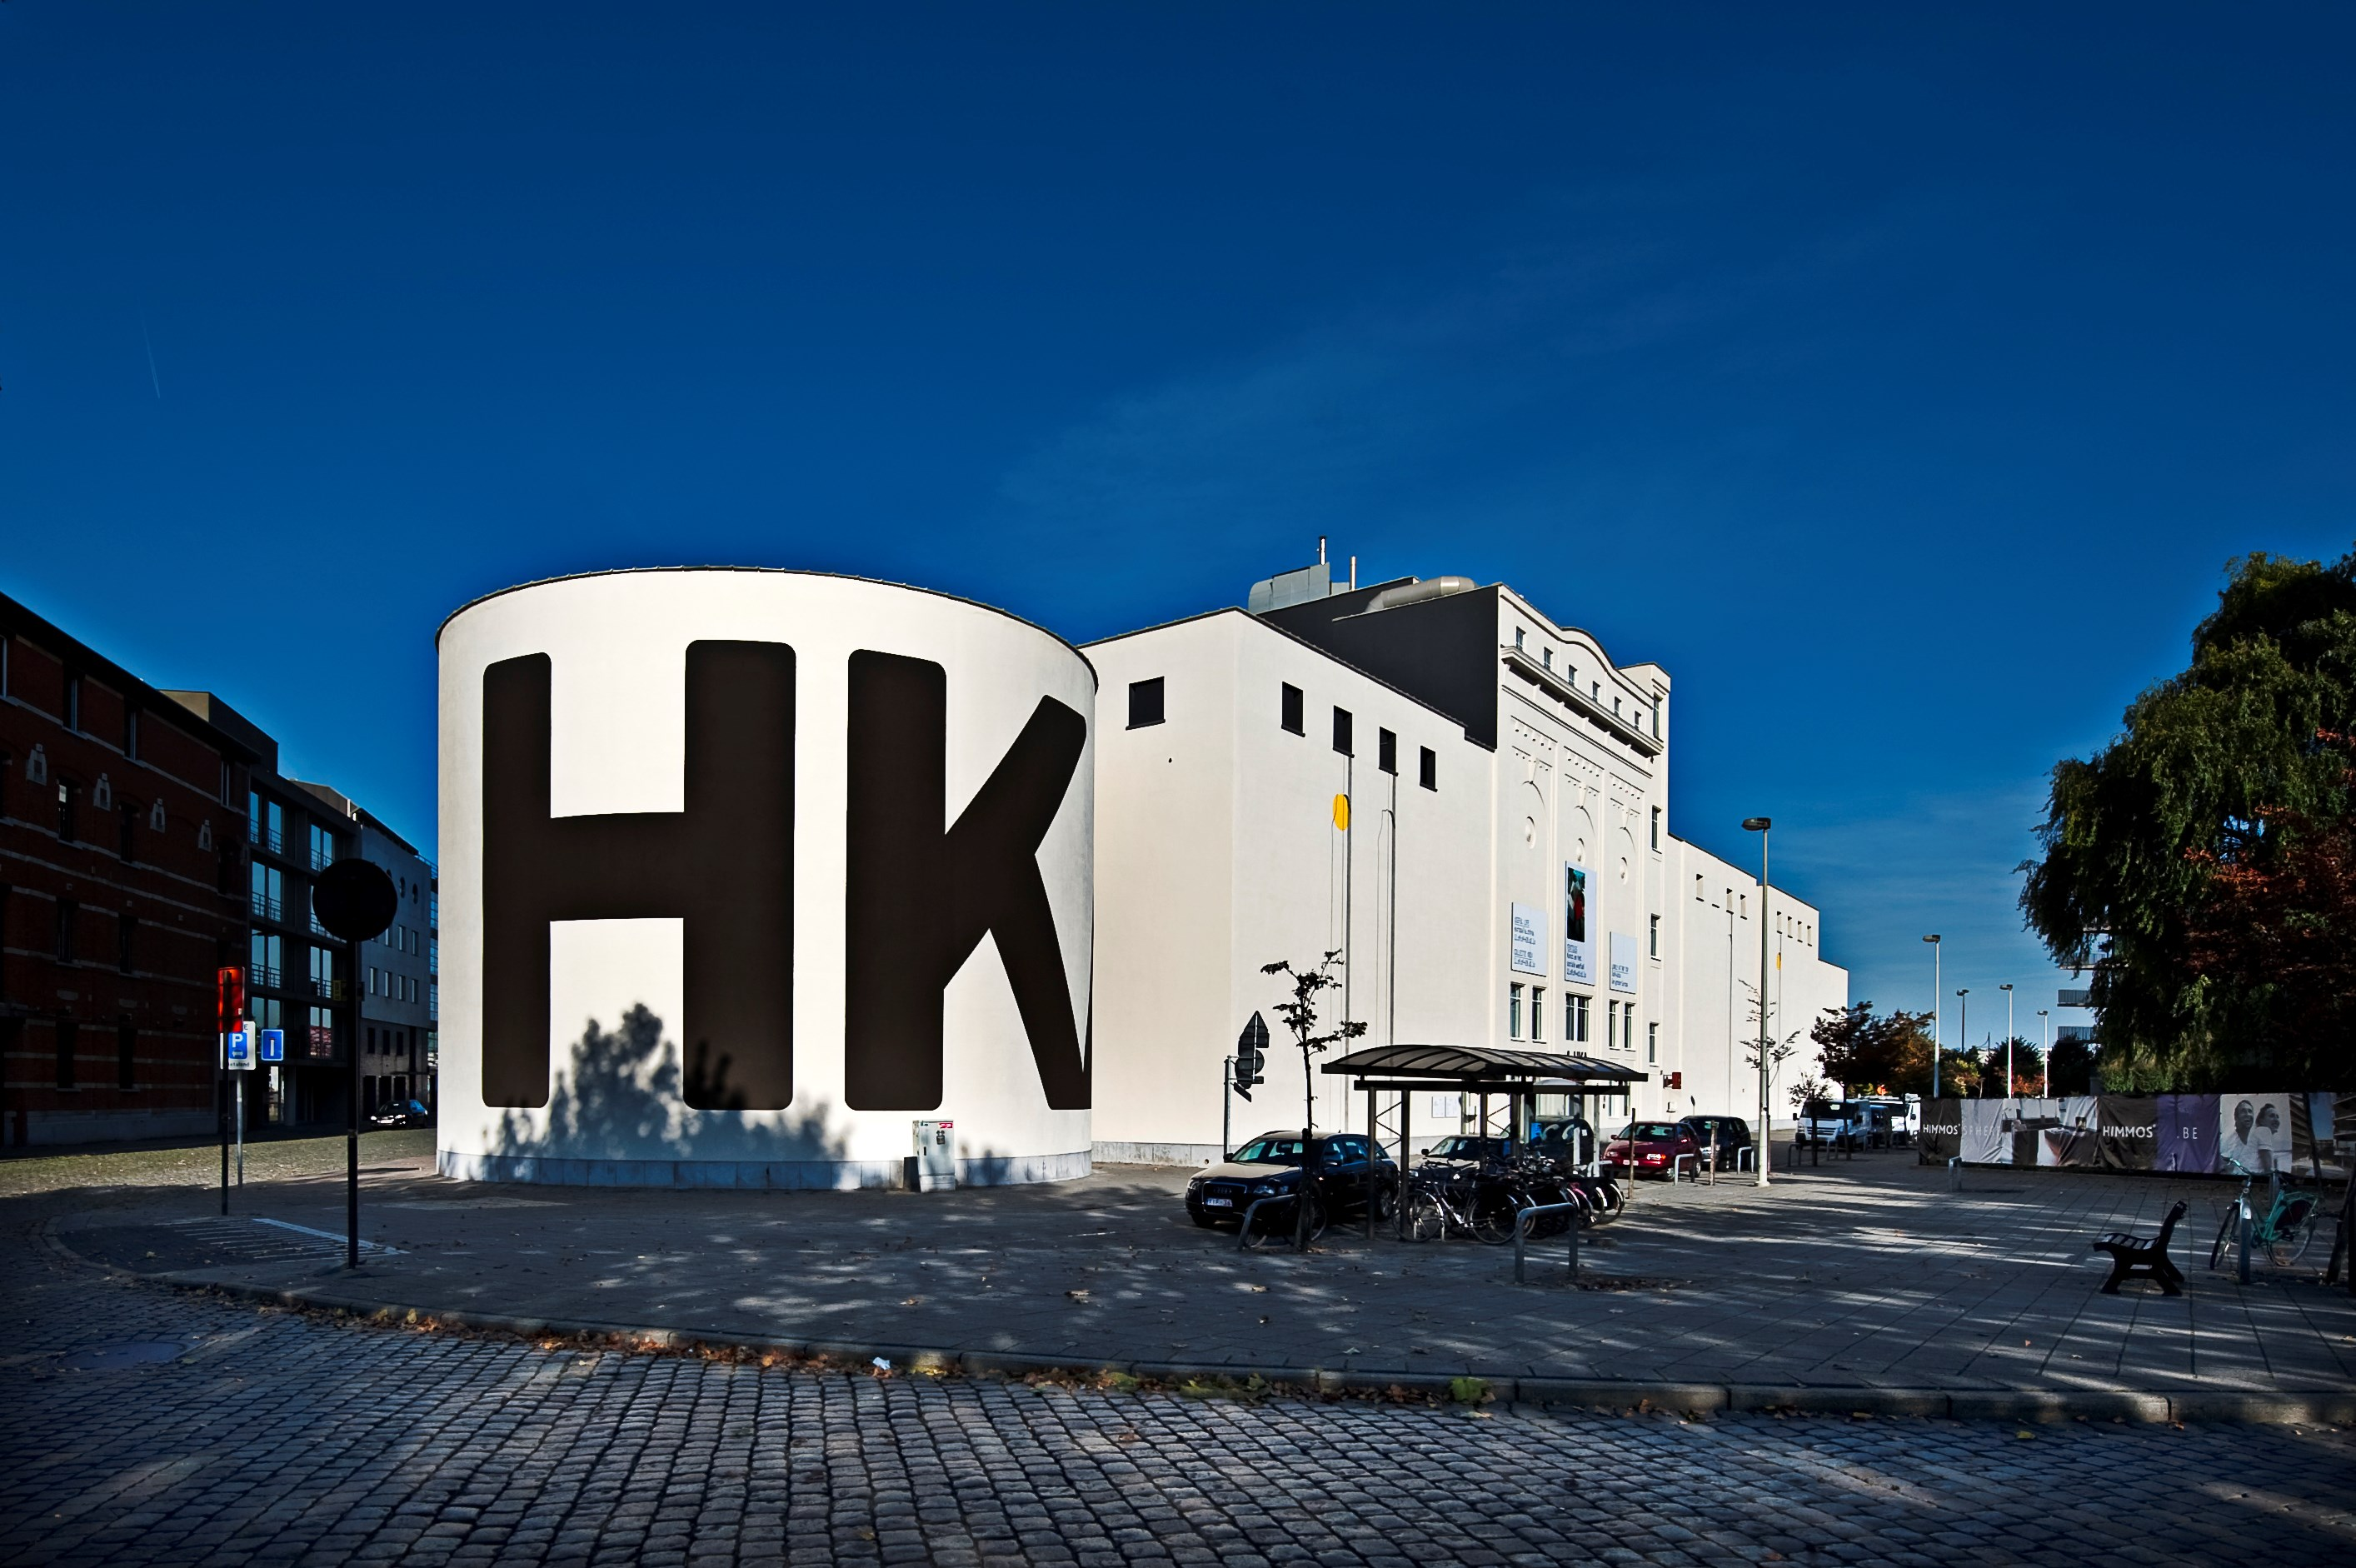 M HKA (Antwerp, Belgium) Prepares for the Future